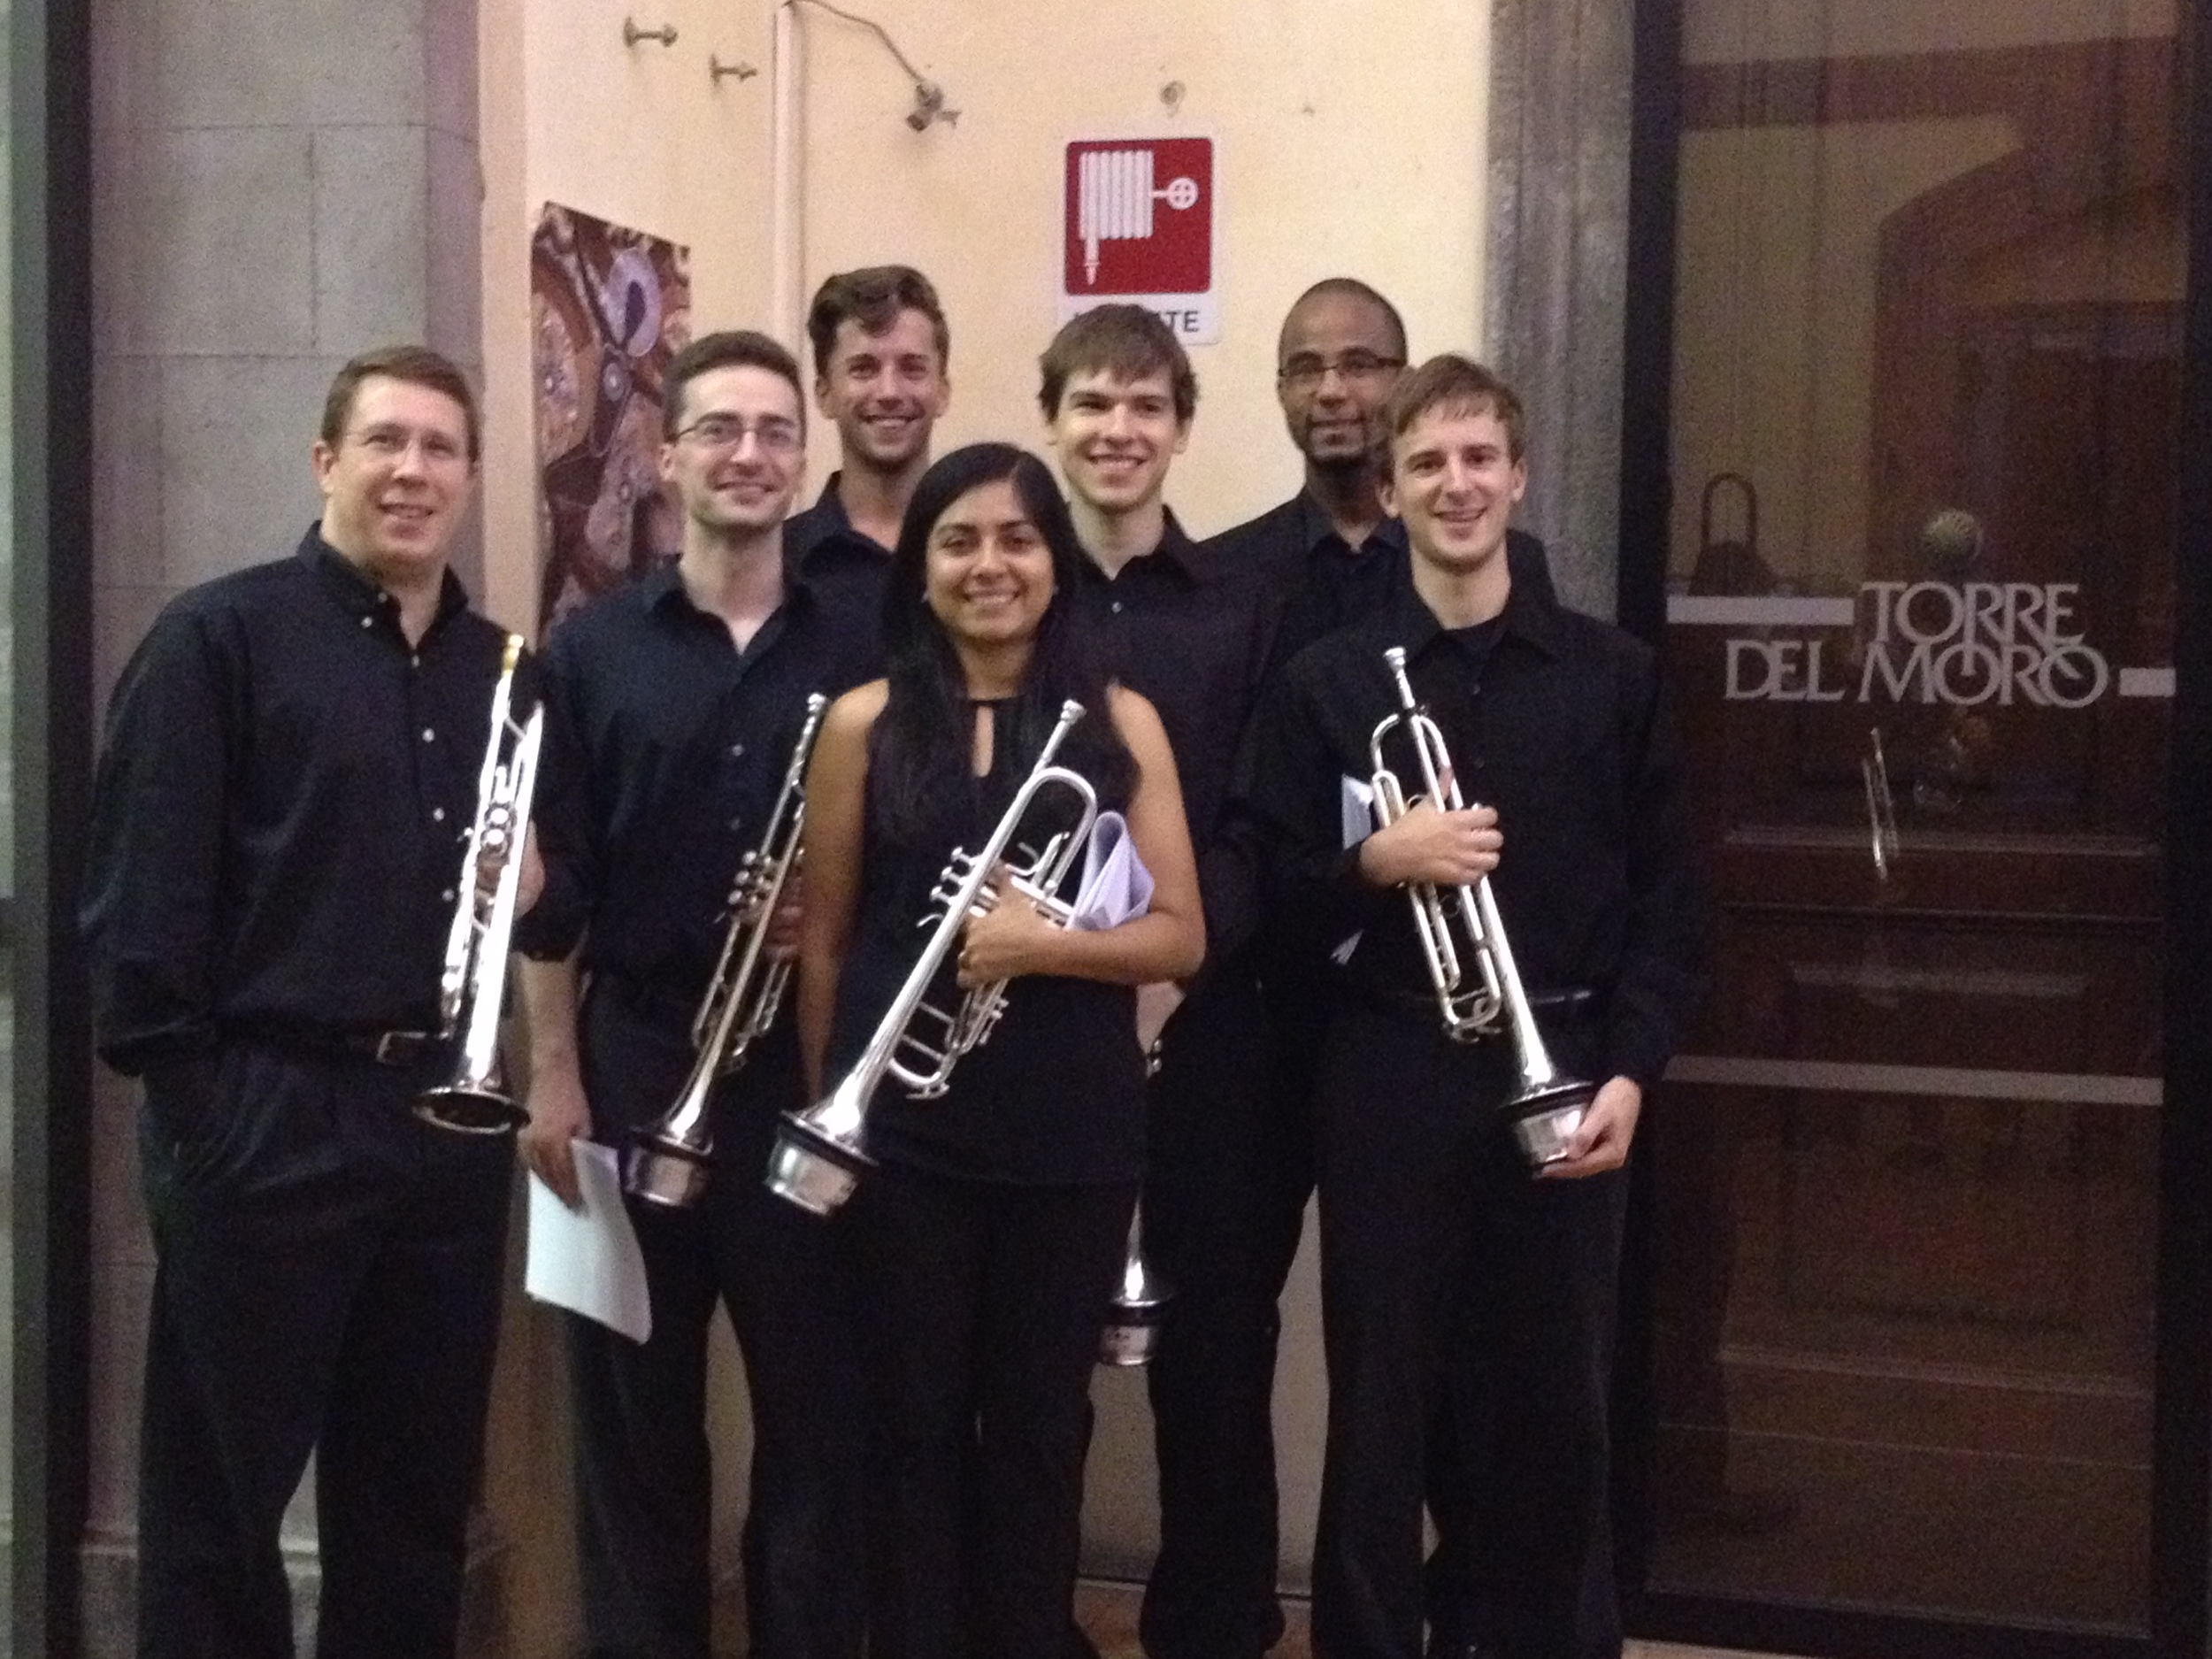 Professor James Ackley on the far left and the USC Trumpet Ensemble in Orvieto, Italy.